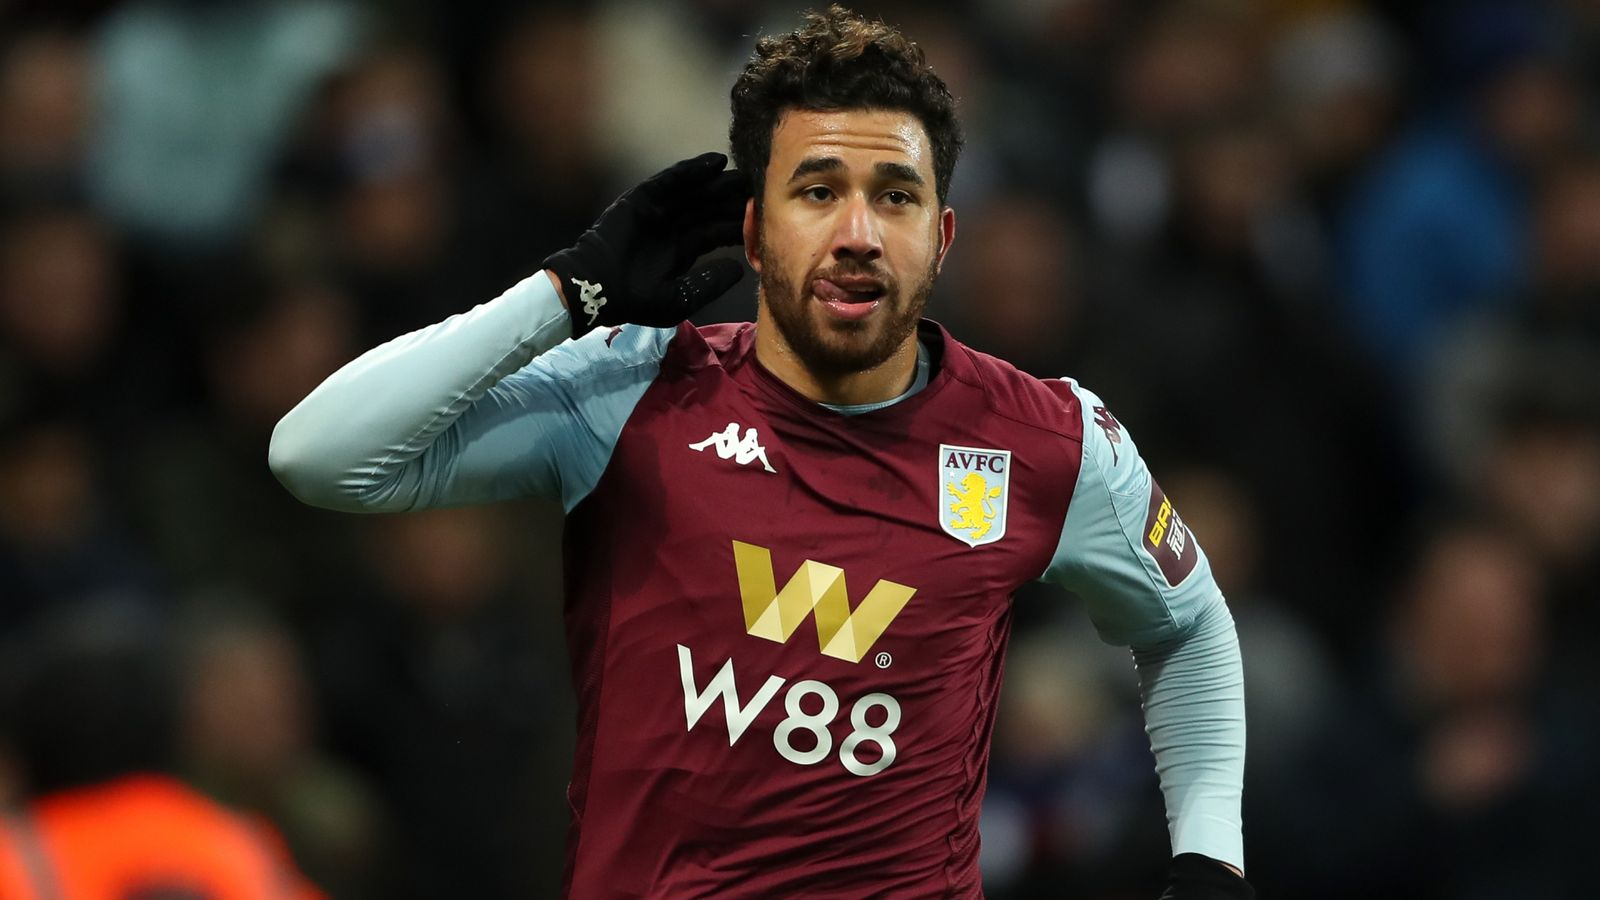 Aston Villa 2-1 Leicester (3-2 agg): Wembley for Villa after Trezeguet goal in stoppage-time